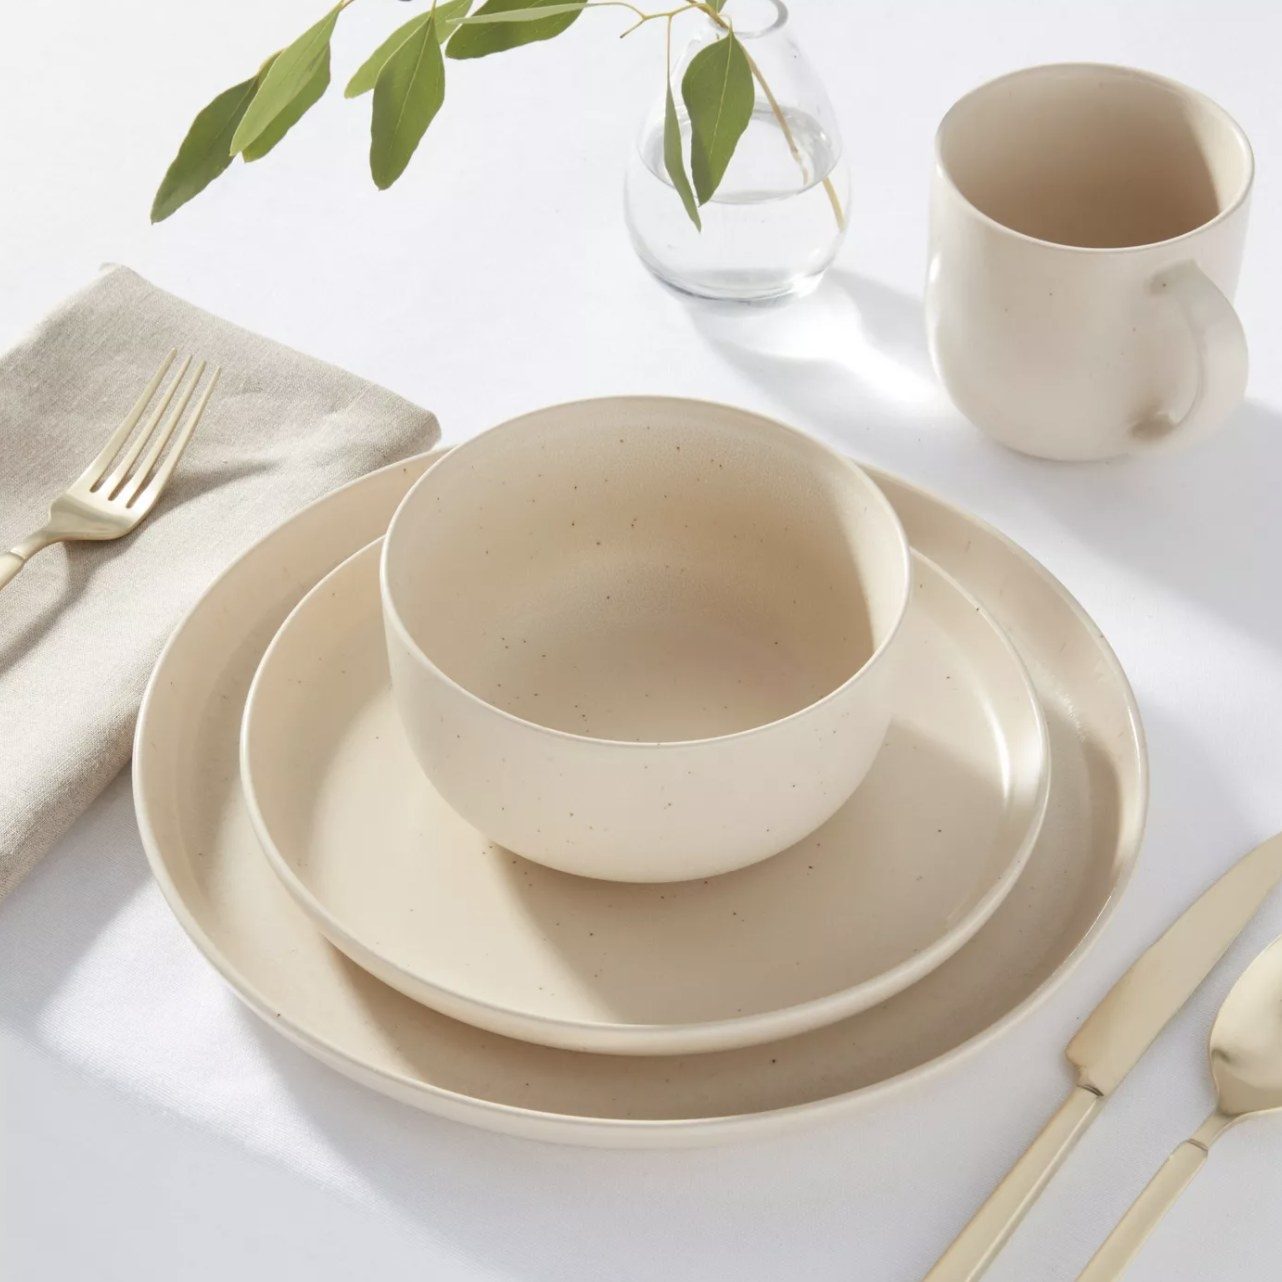 Dinnerware set on table